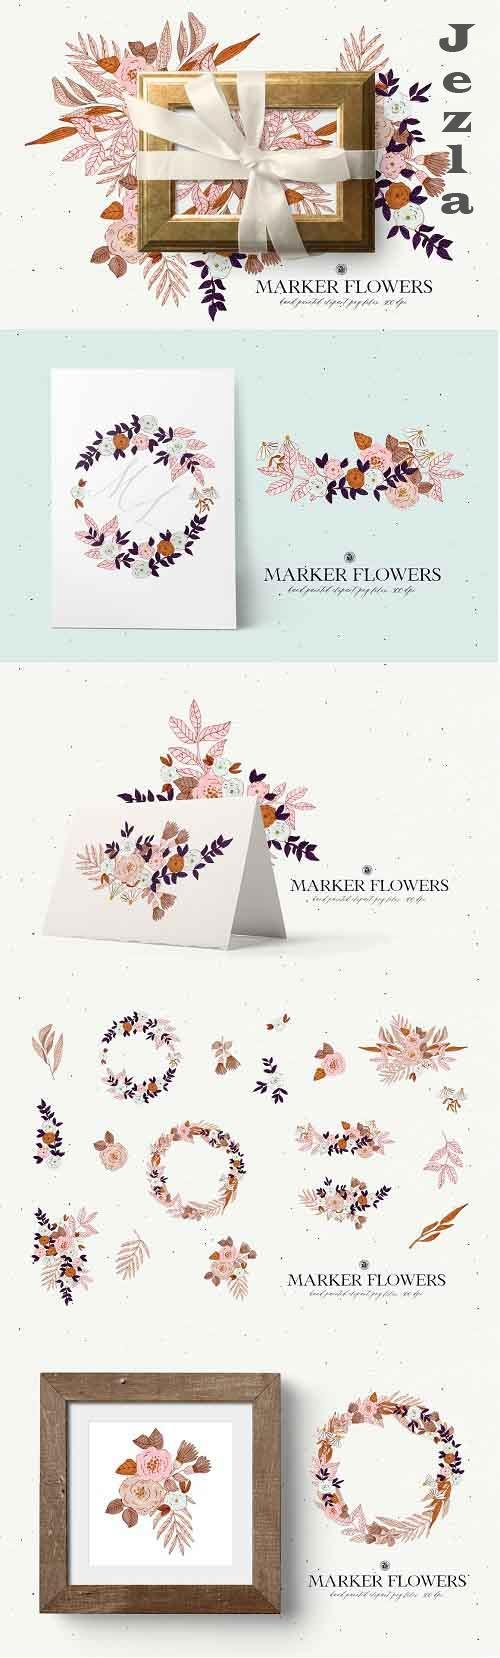 Marker Flowers - floral clipart - 5920393